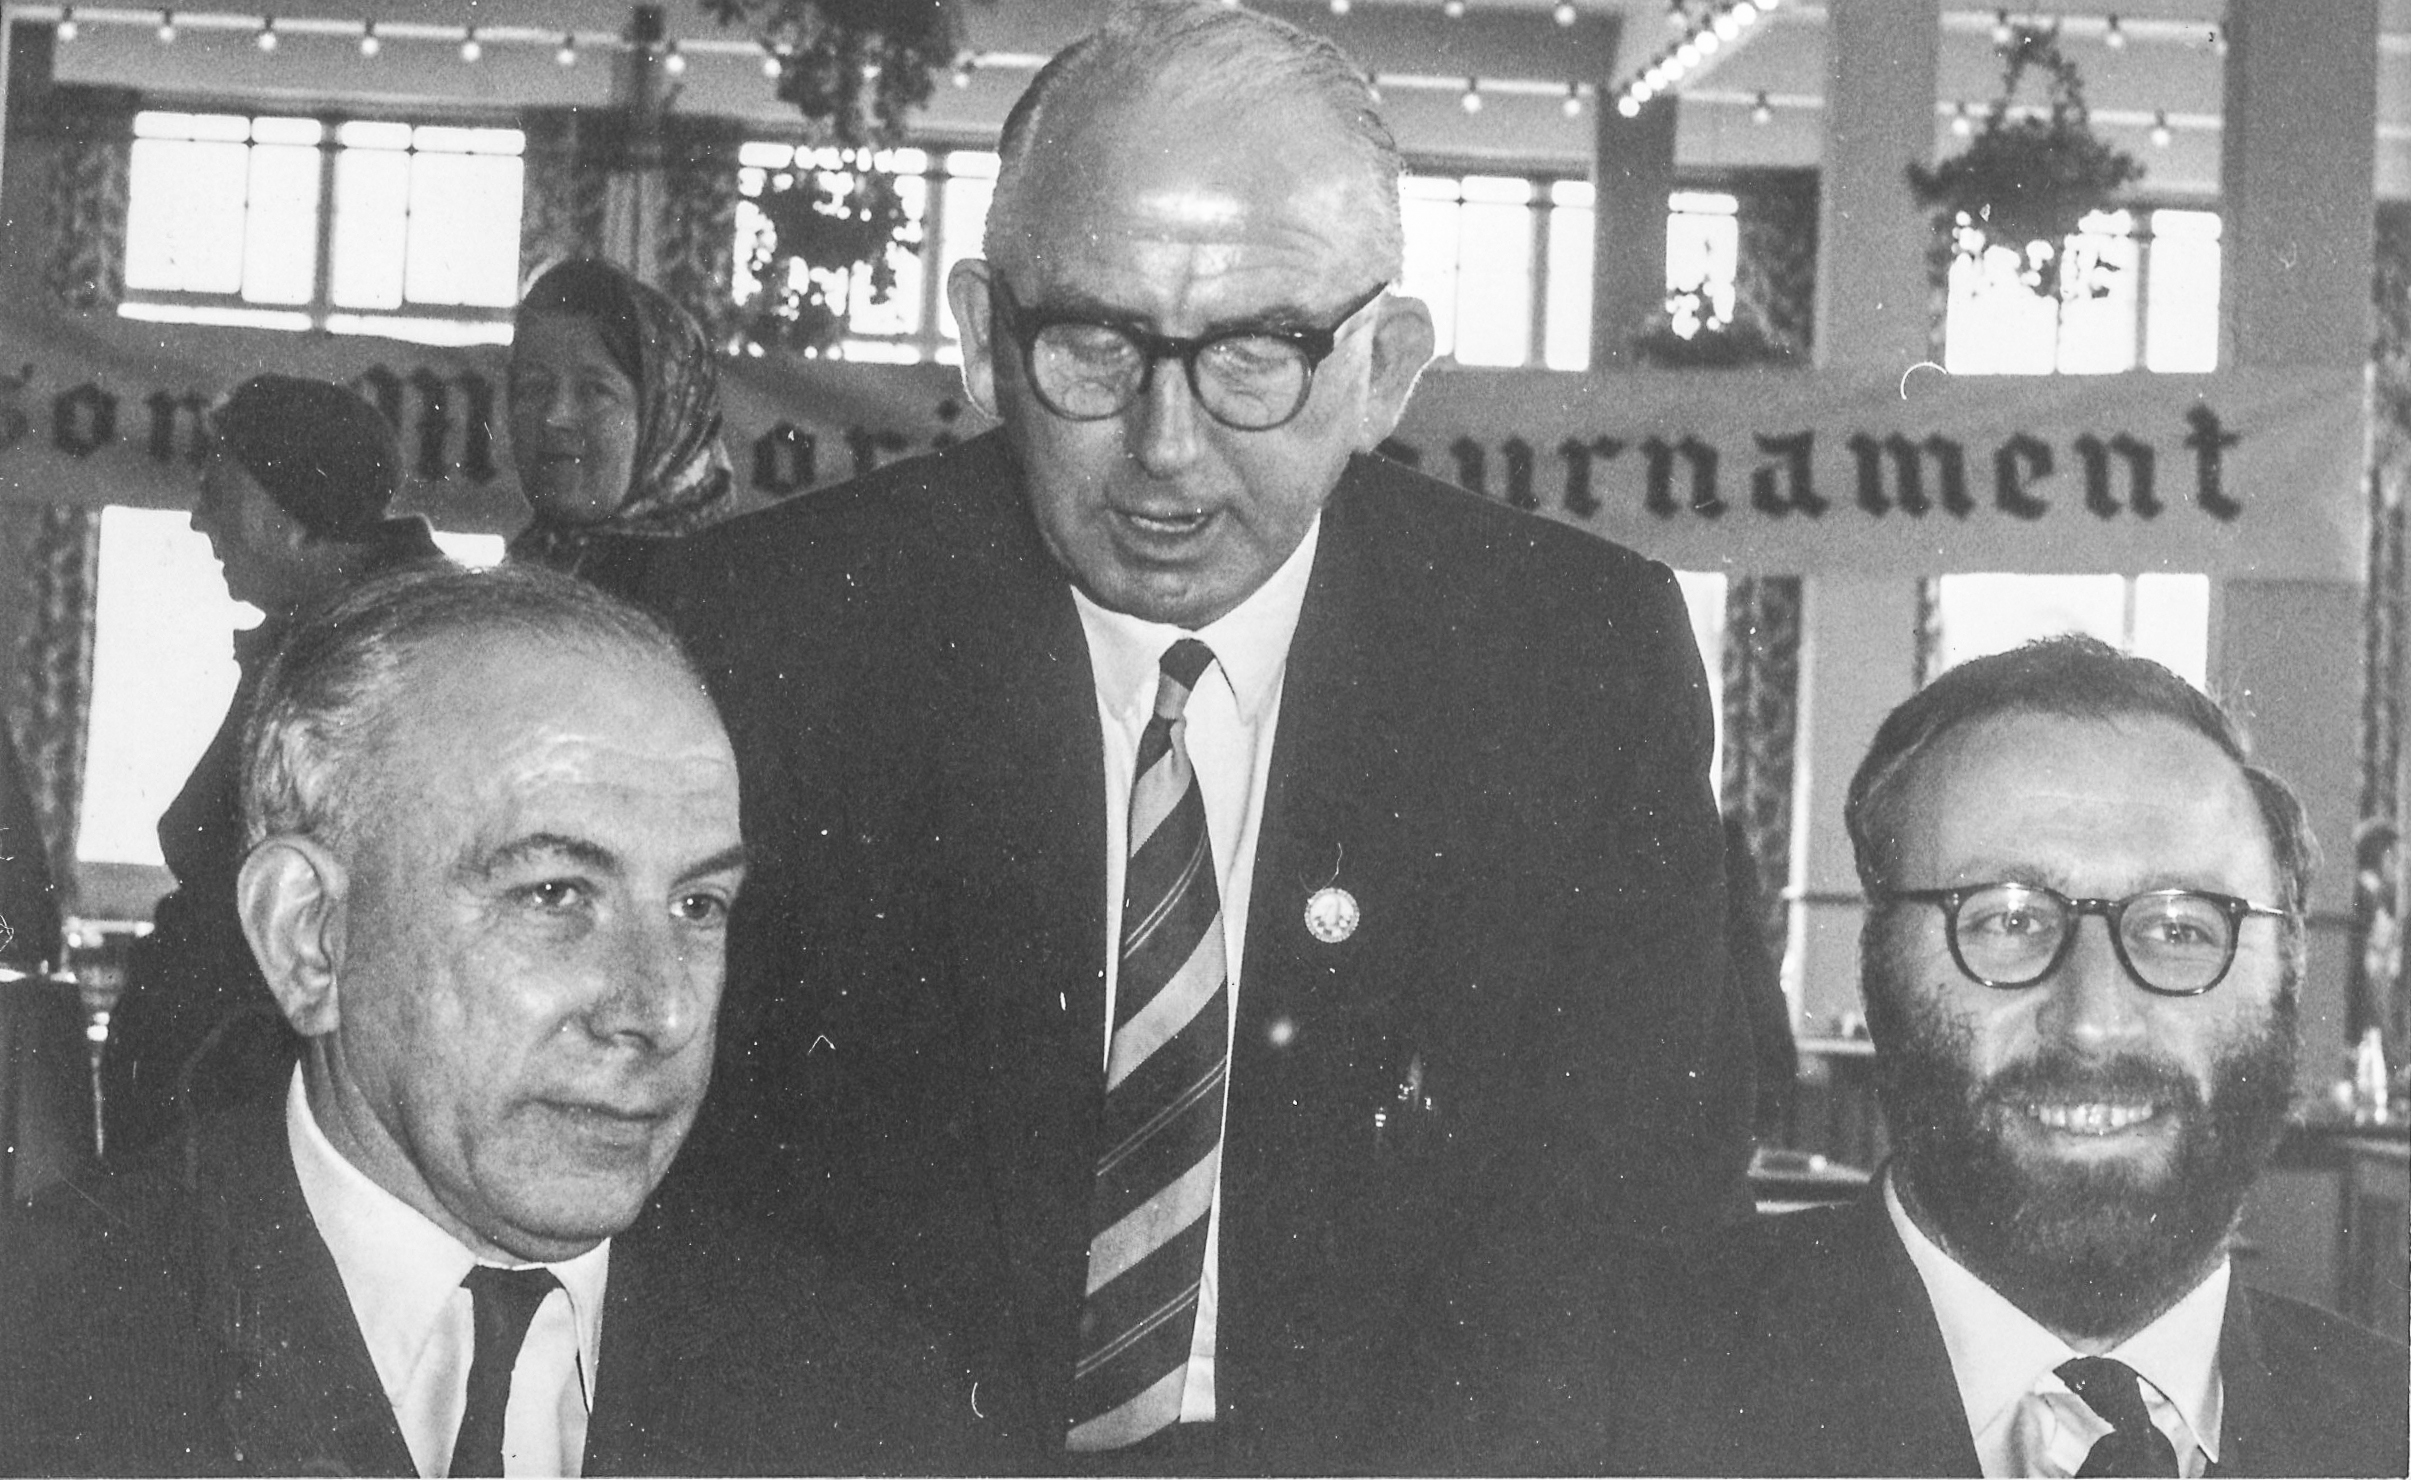 Harry Golombek, Norman Fishlock-Lomax and Denis Victor Mardle at the Hastings International Congress of 1965(?)